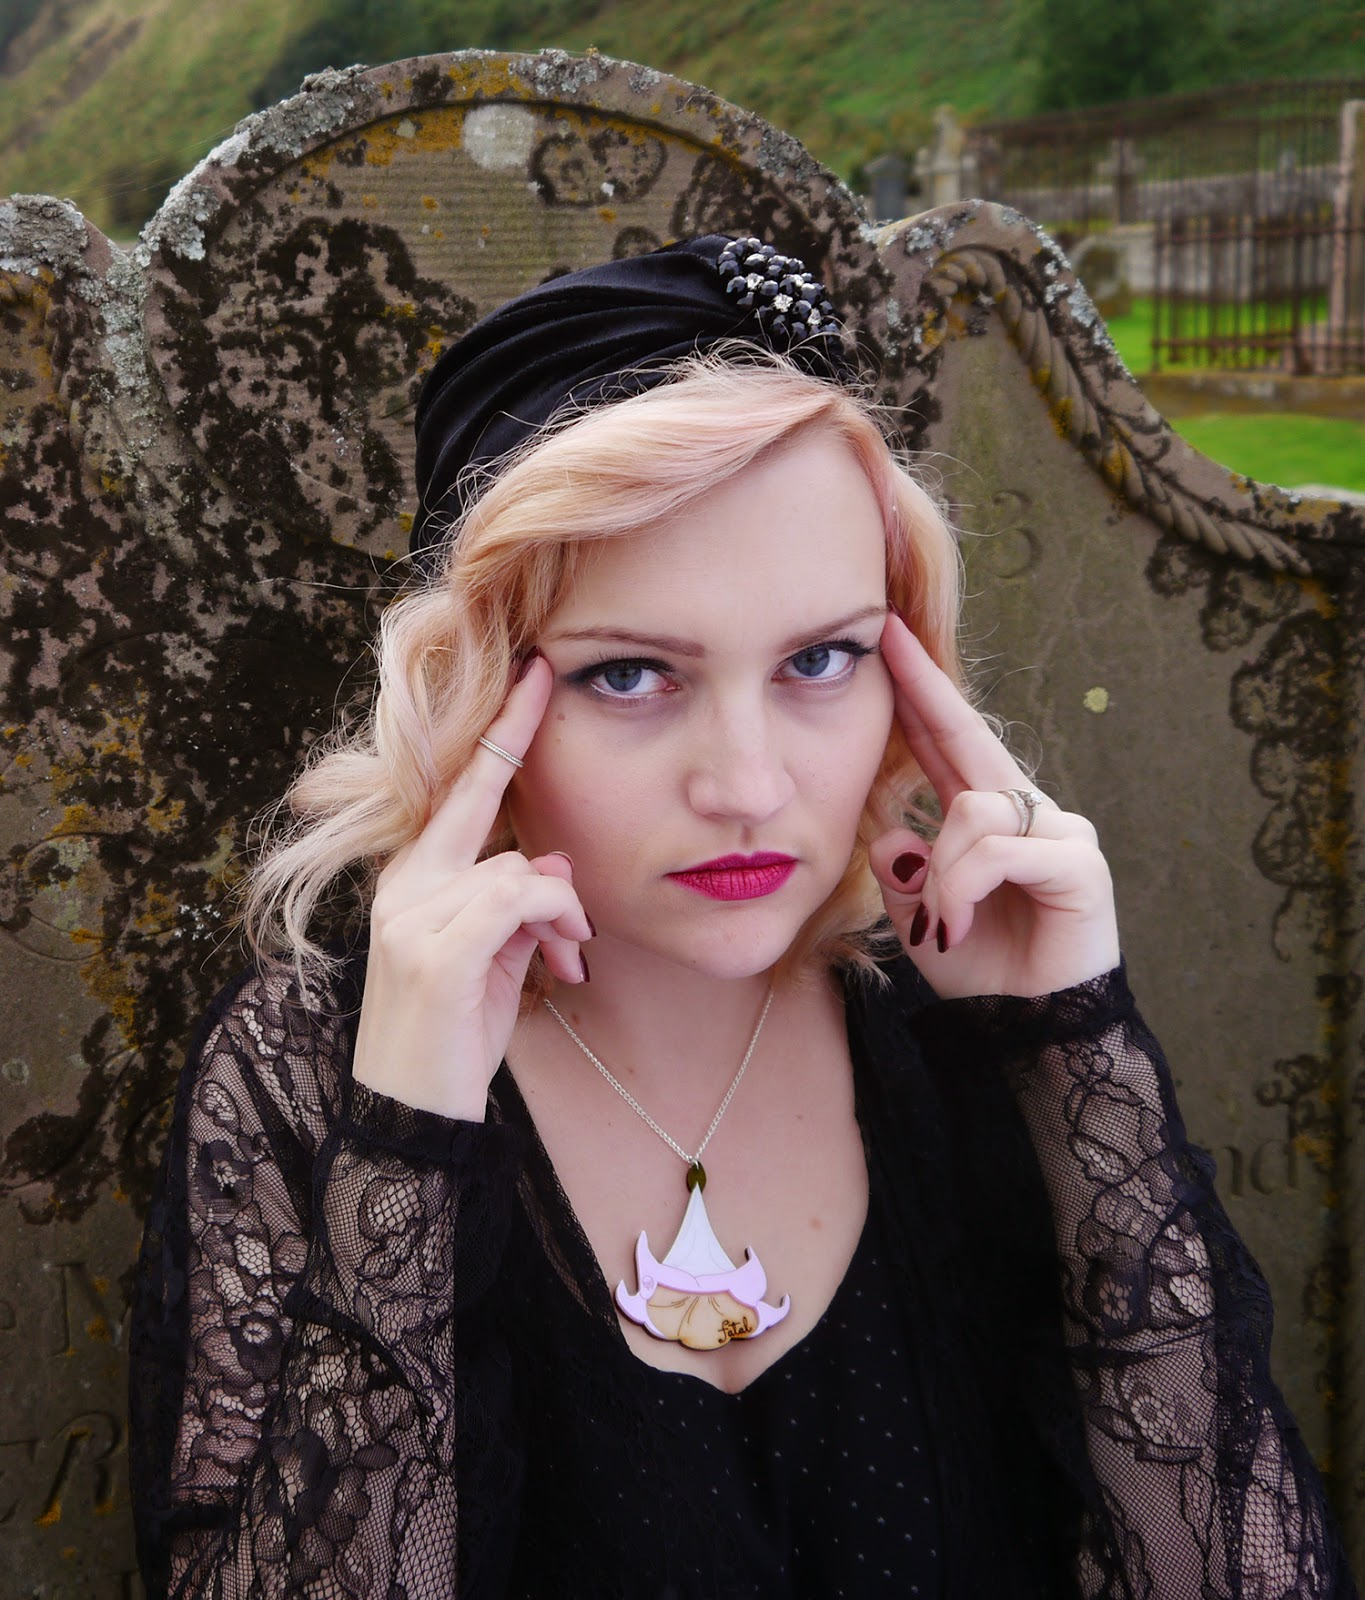 spiritual medium, psychic, the coven, witch, fashion, peach hair, turban, 1920s, flapper, poisonous flowers, scottish bloggers, scotstreetstyle, Kimberley festival,